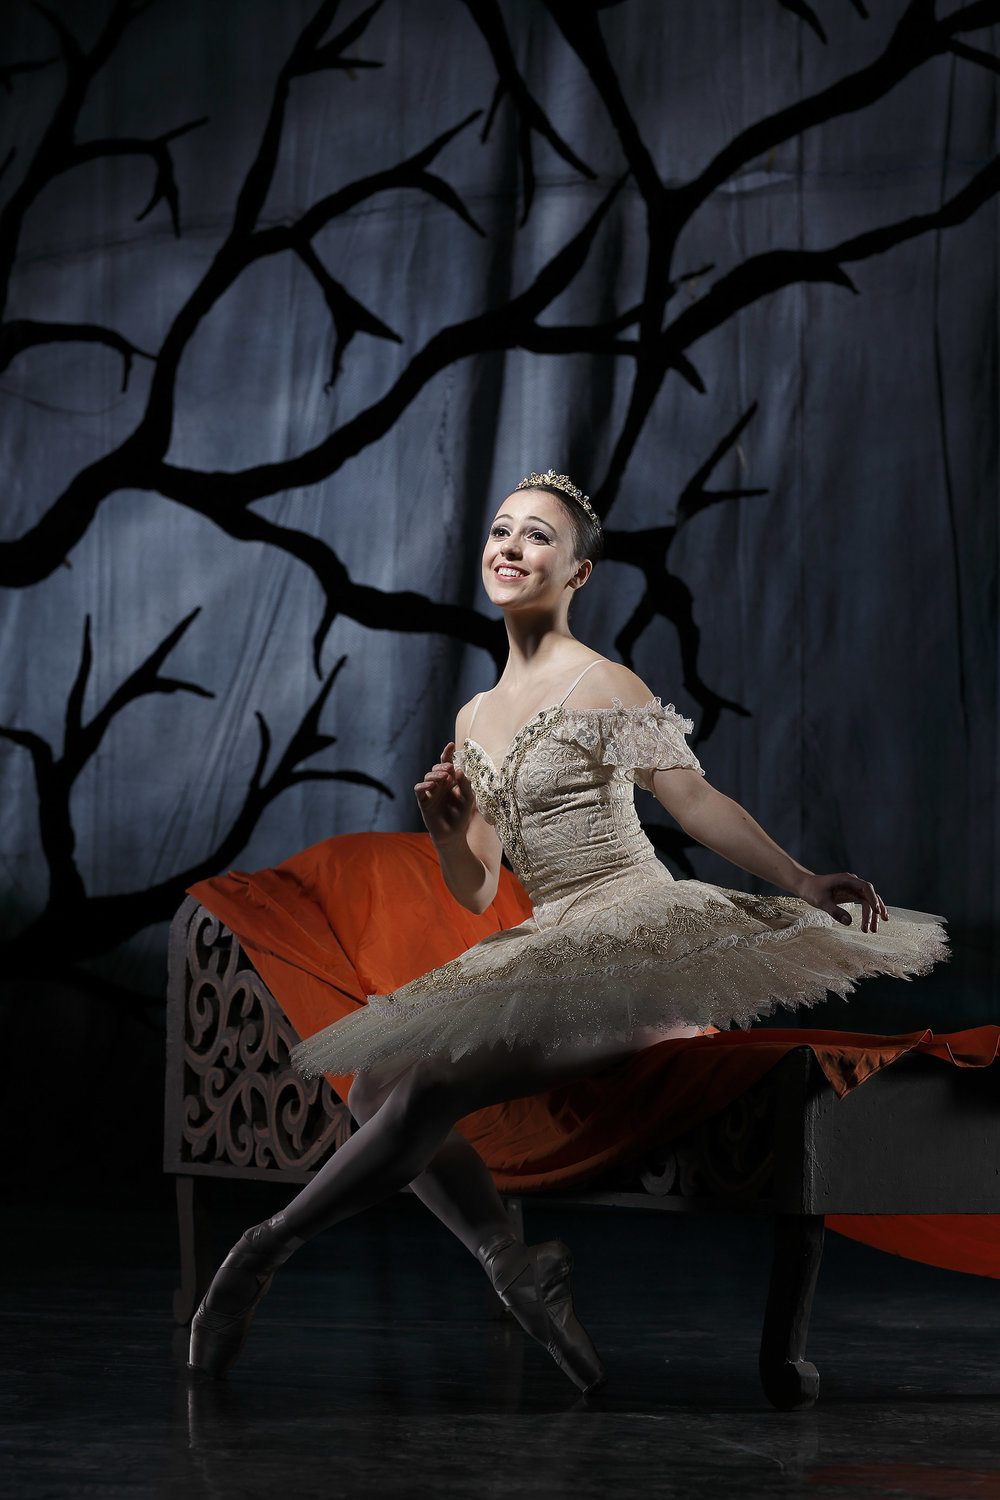 "Katherine Barkman is excited to dance as Princess Aurora in    The Swan, The Fairy and the Princess   . ""The style, the character, the music, everything about this ballet resonates with me"" she enthuses."